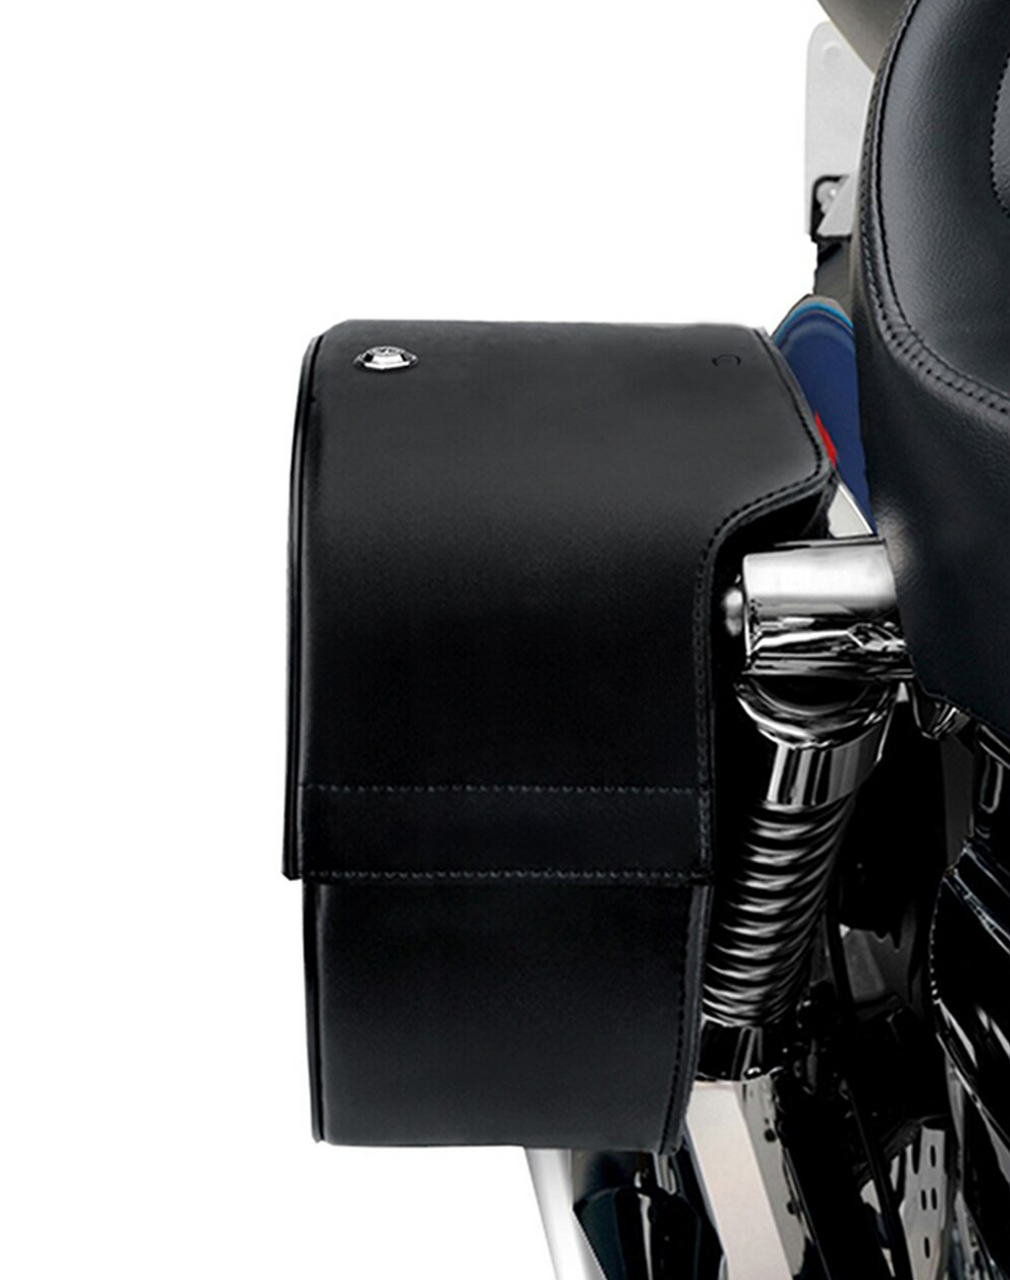 Viking shock Cutout Slanted Studded SS Large Motorcycle Saddlebags For Harley Dyna Switchback Shock Cutout View